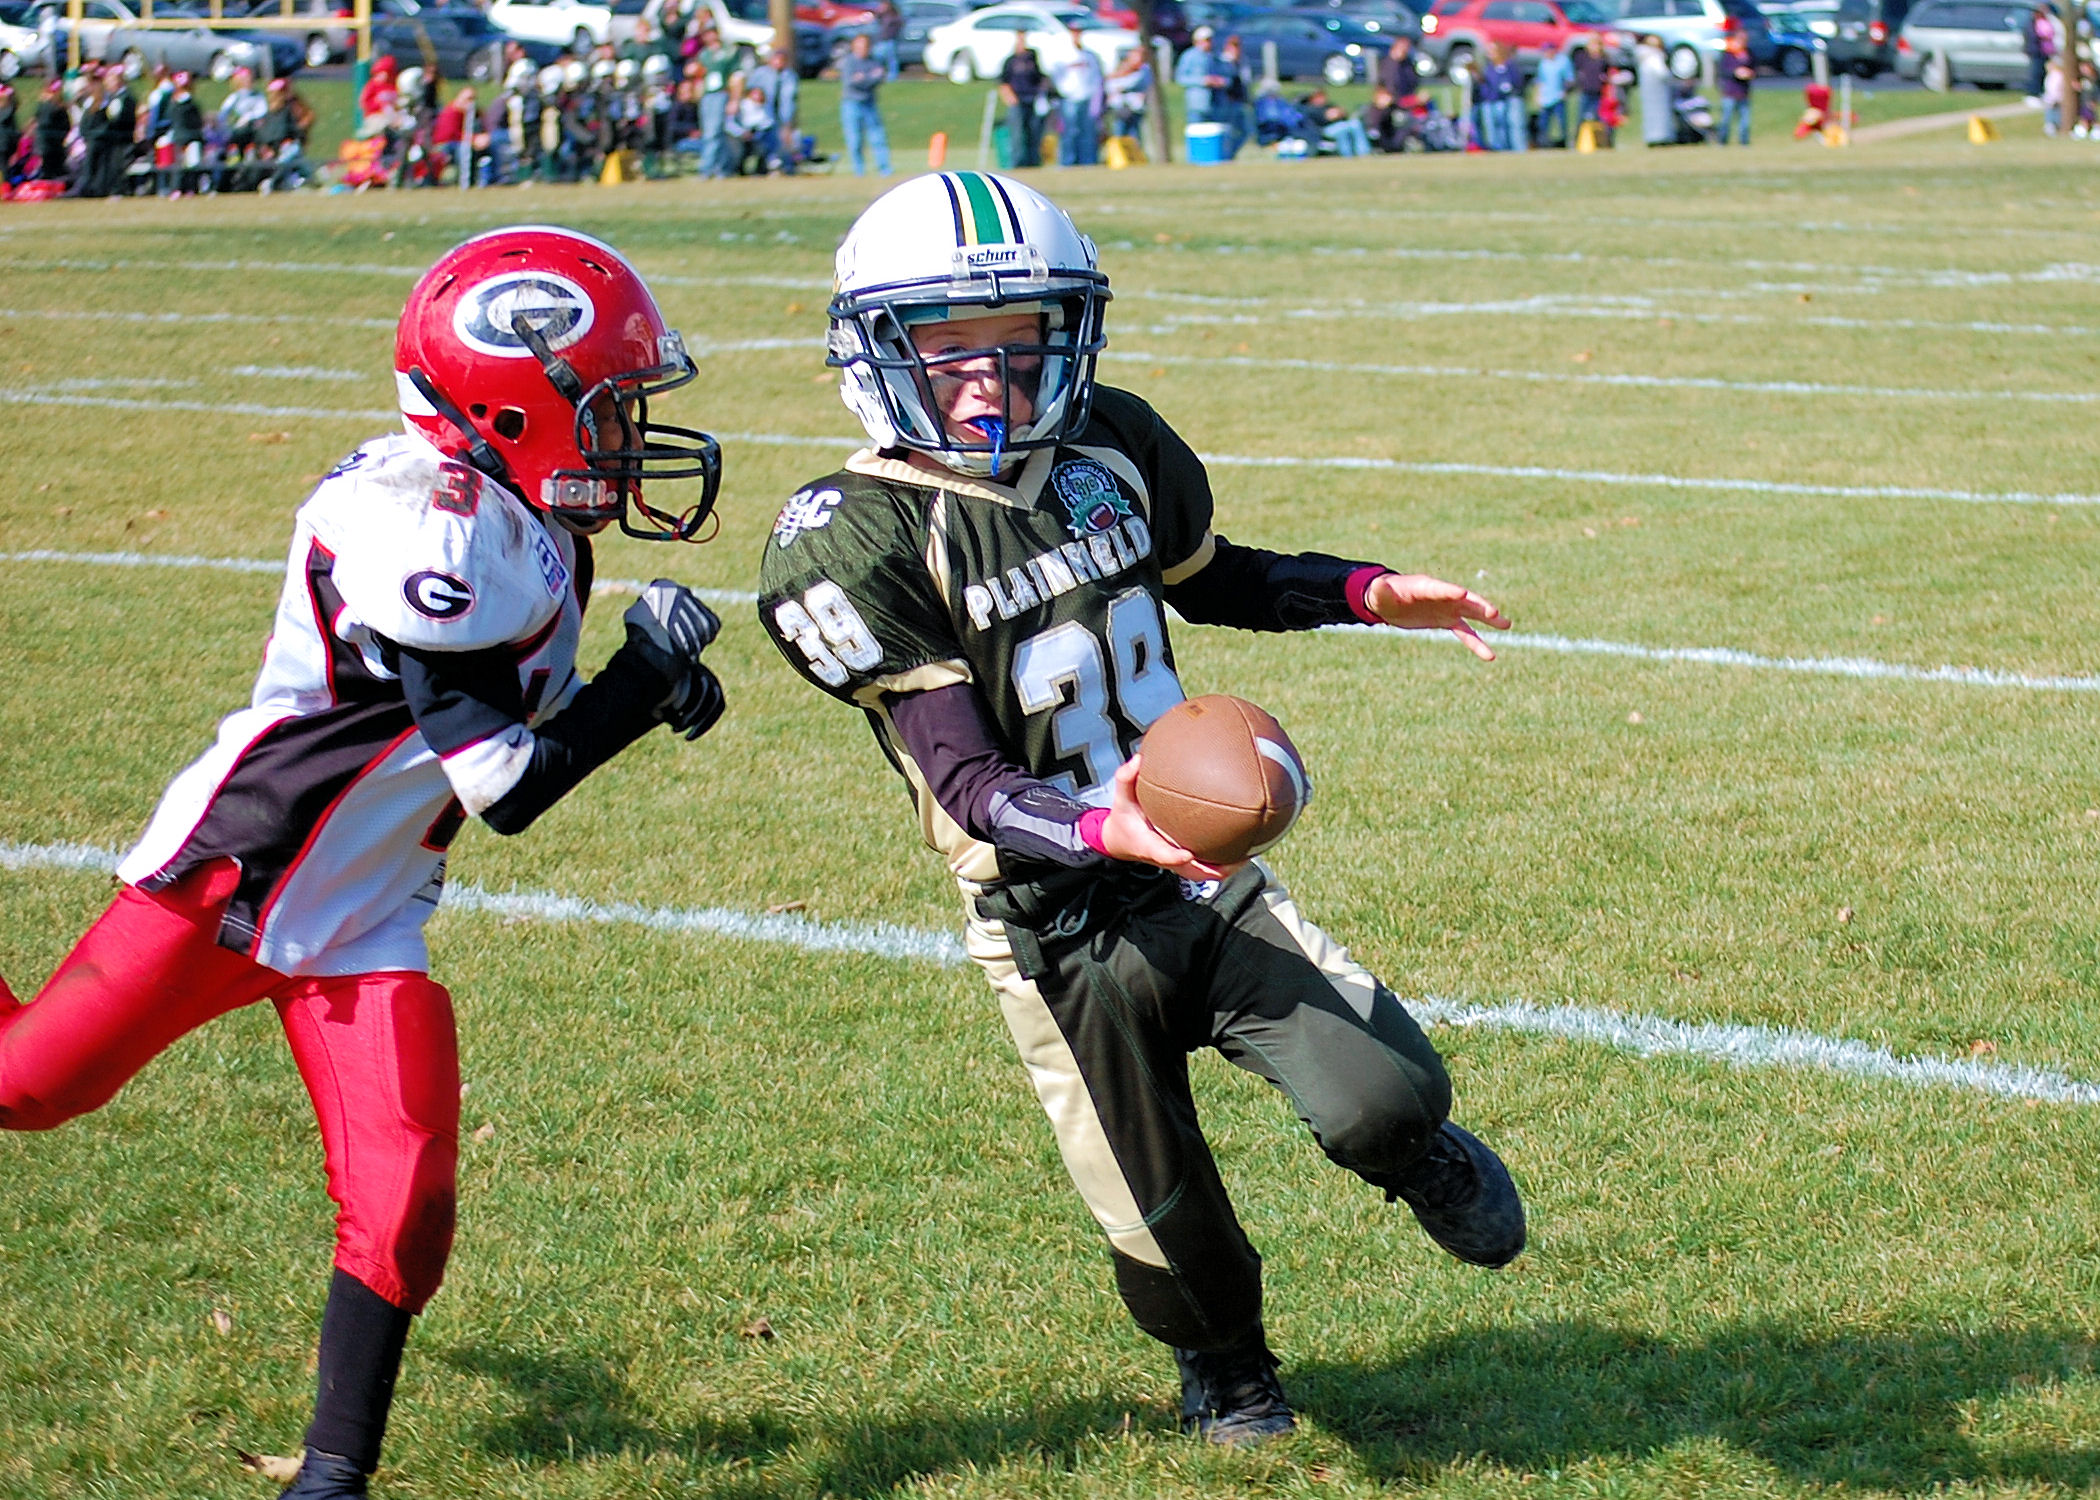 Lake Zurich Football >> TCYFL: The Chicagoland Youth Football League